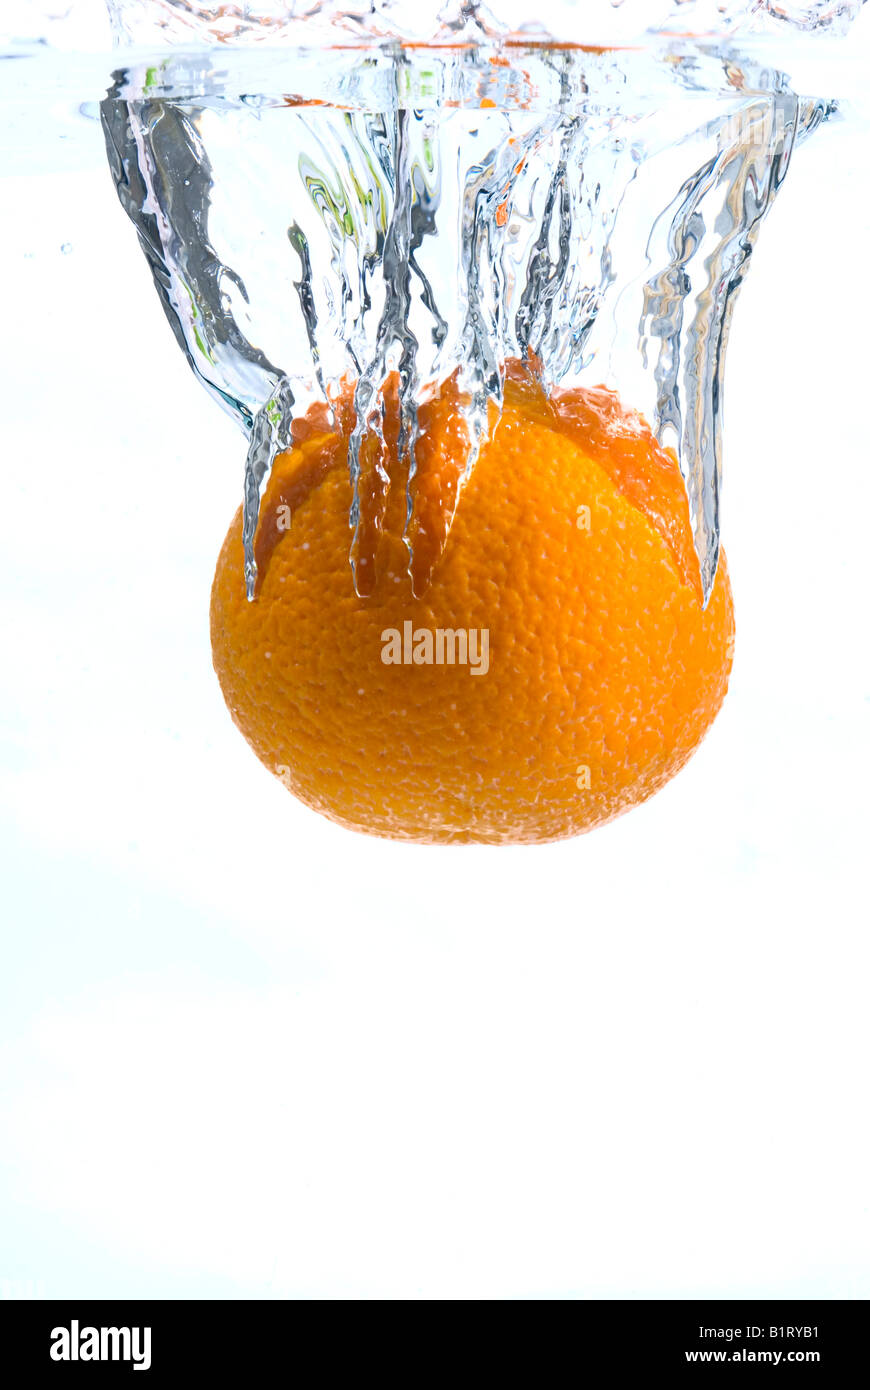 Orange plunging into water - Stock Image